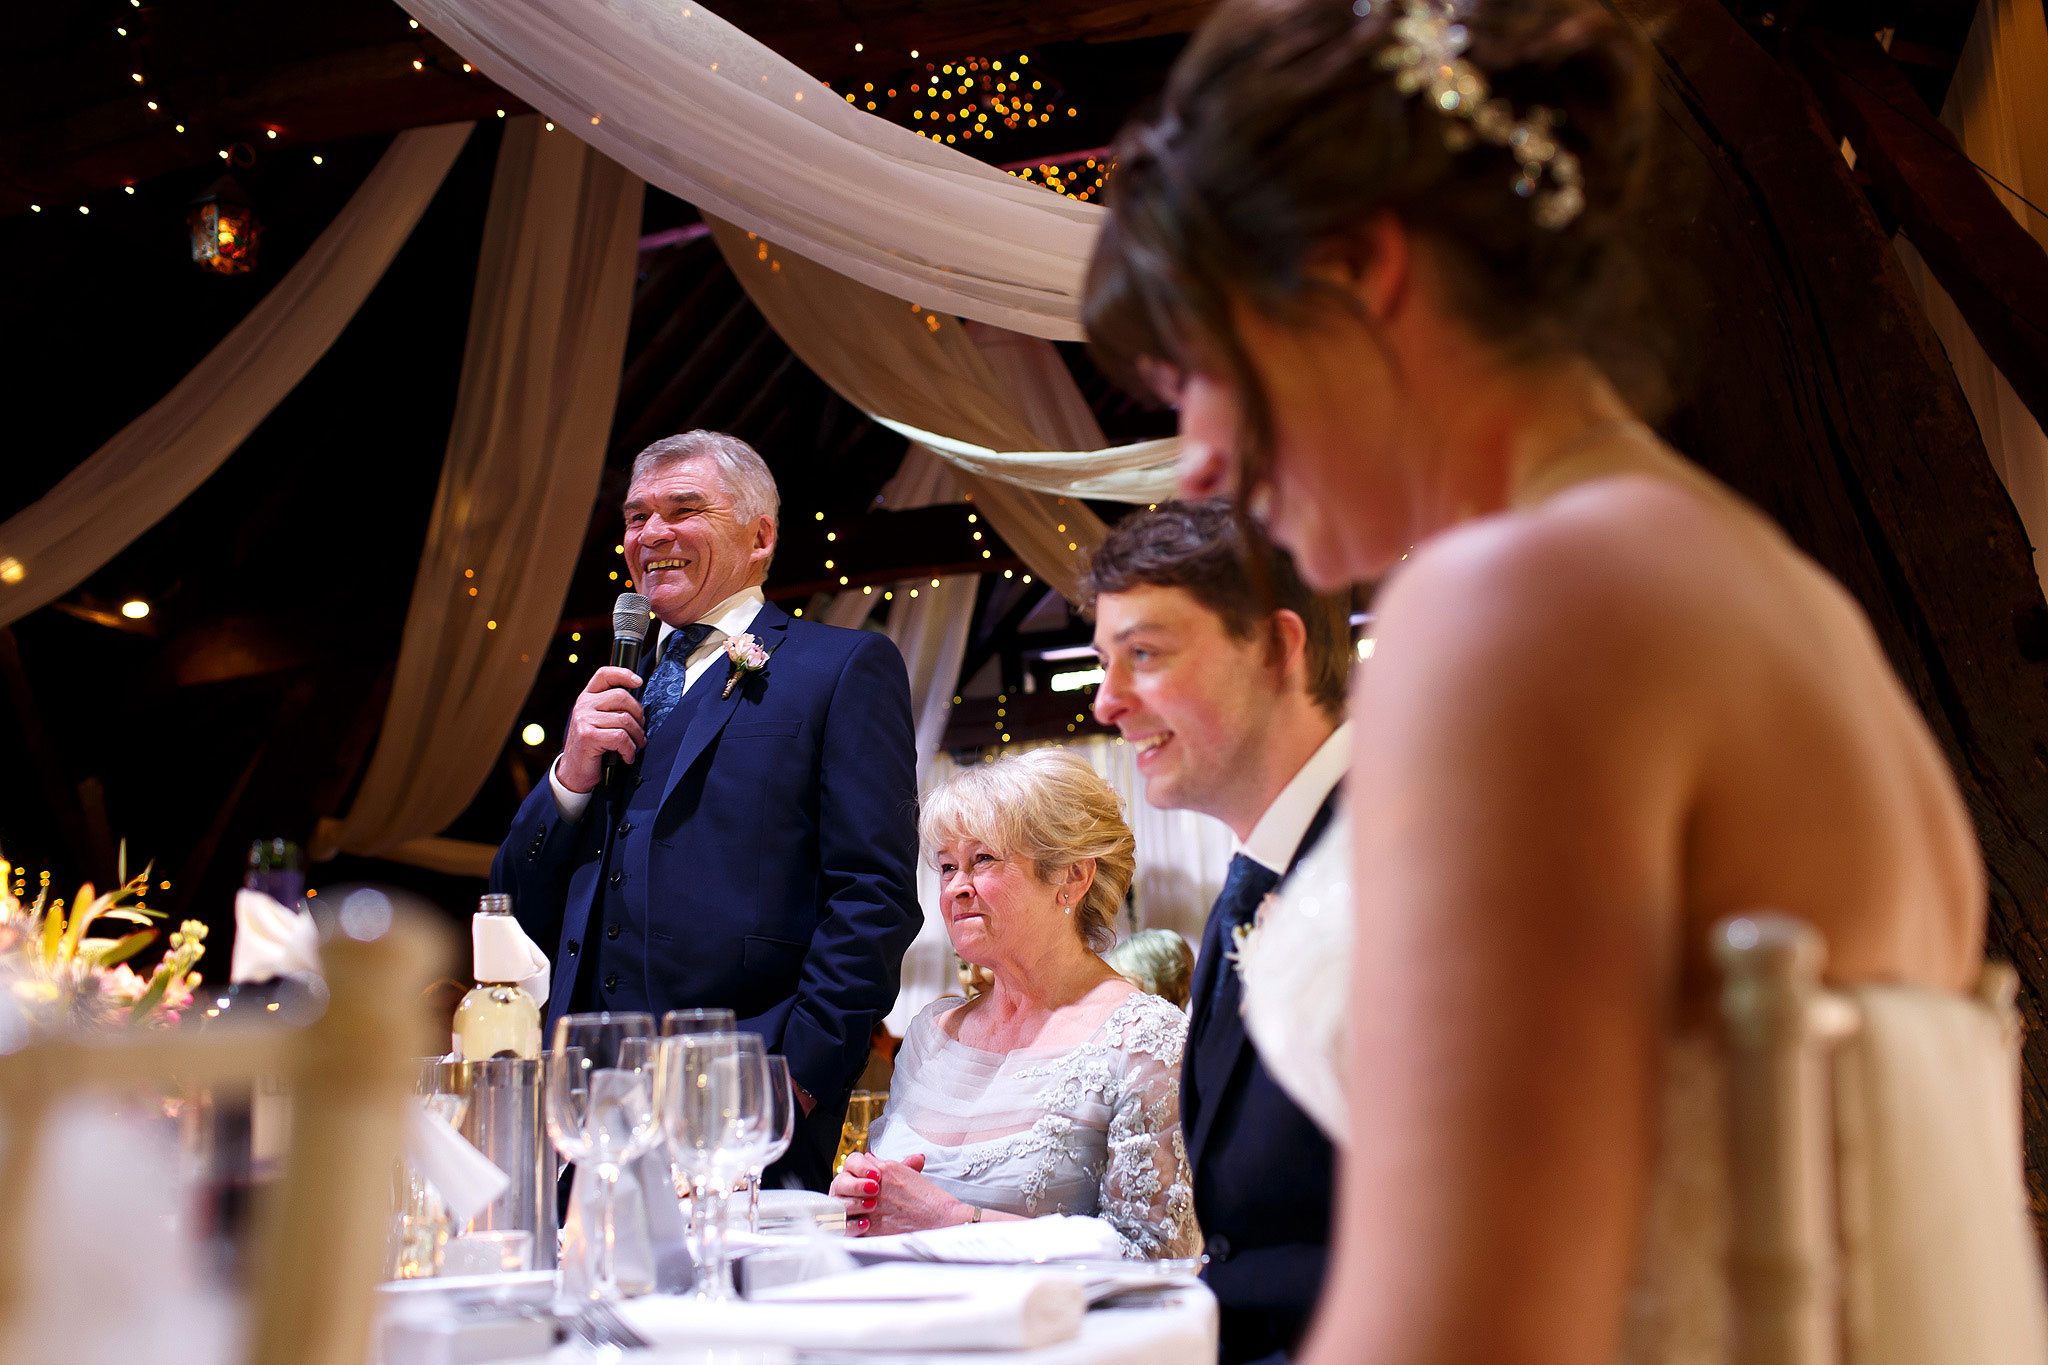 Father of the bride wearing navy suit making his speech during Rivington Hall Barn wedding reception